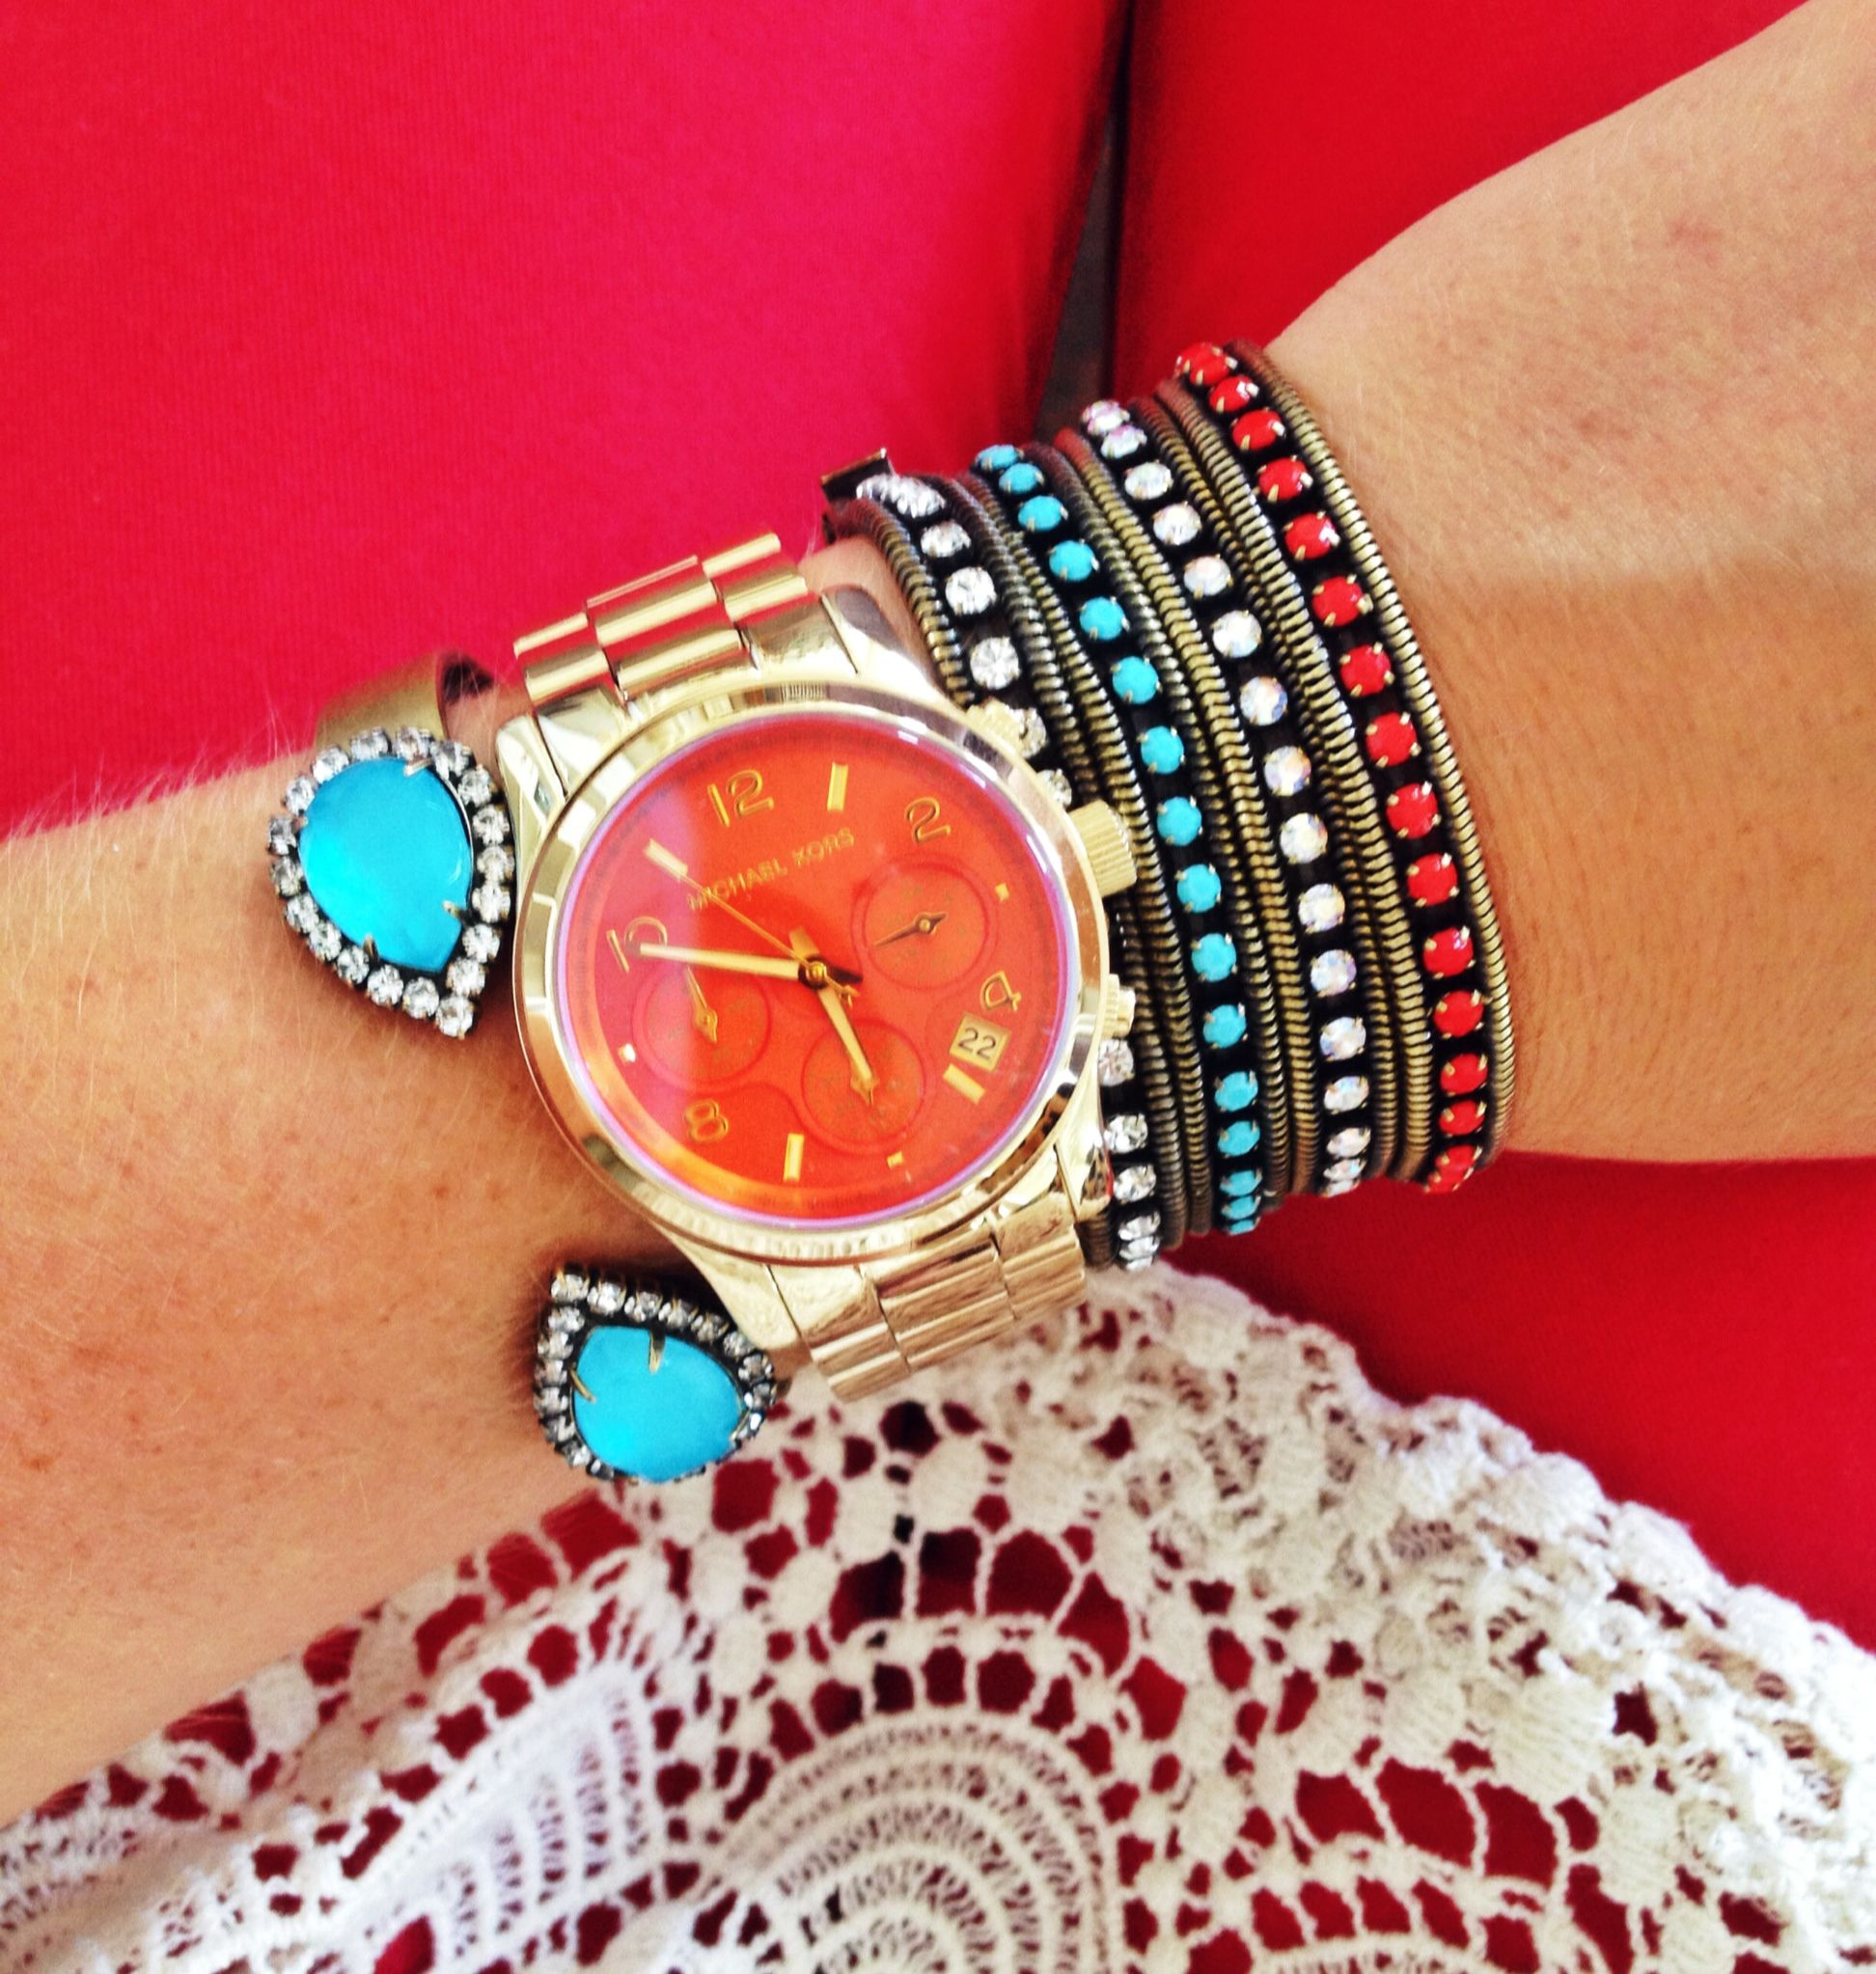 Michael kors x loren hope jewelry pinterest michael kors